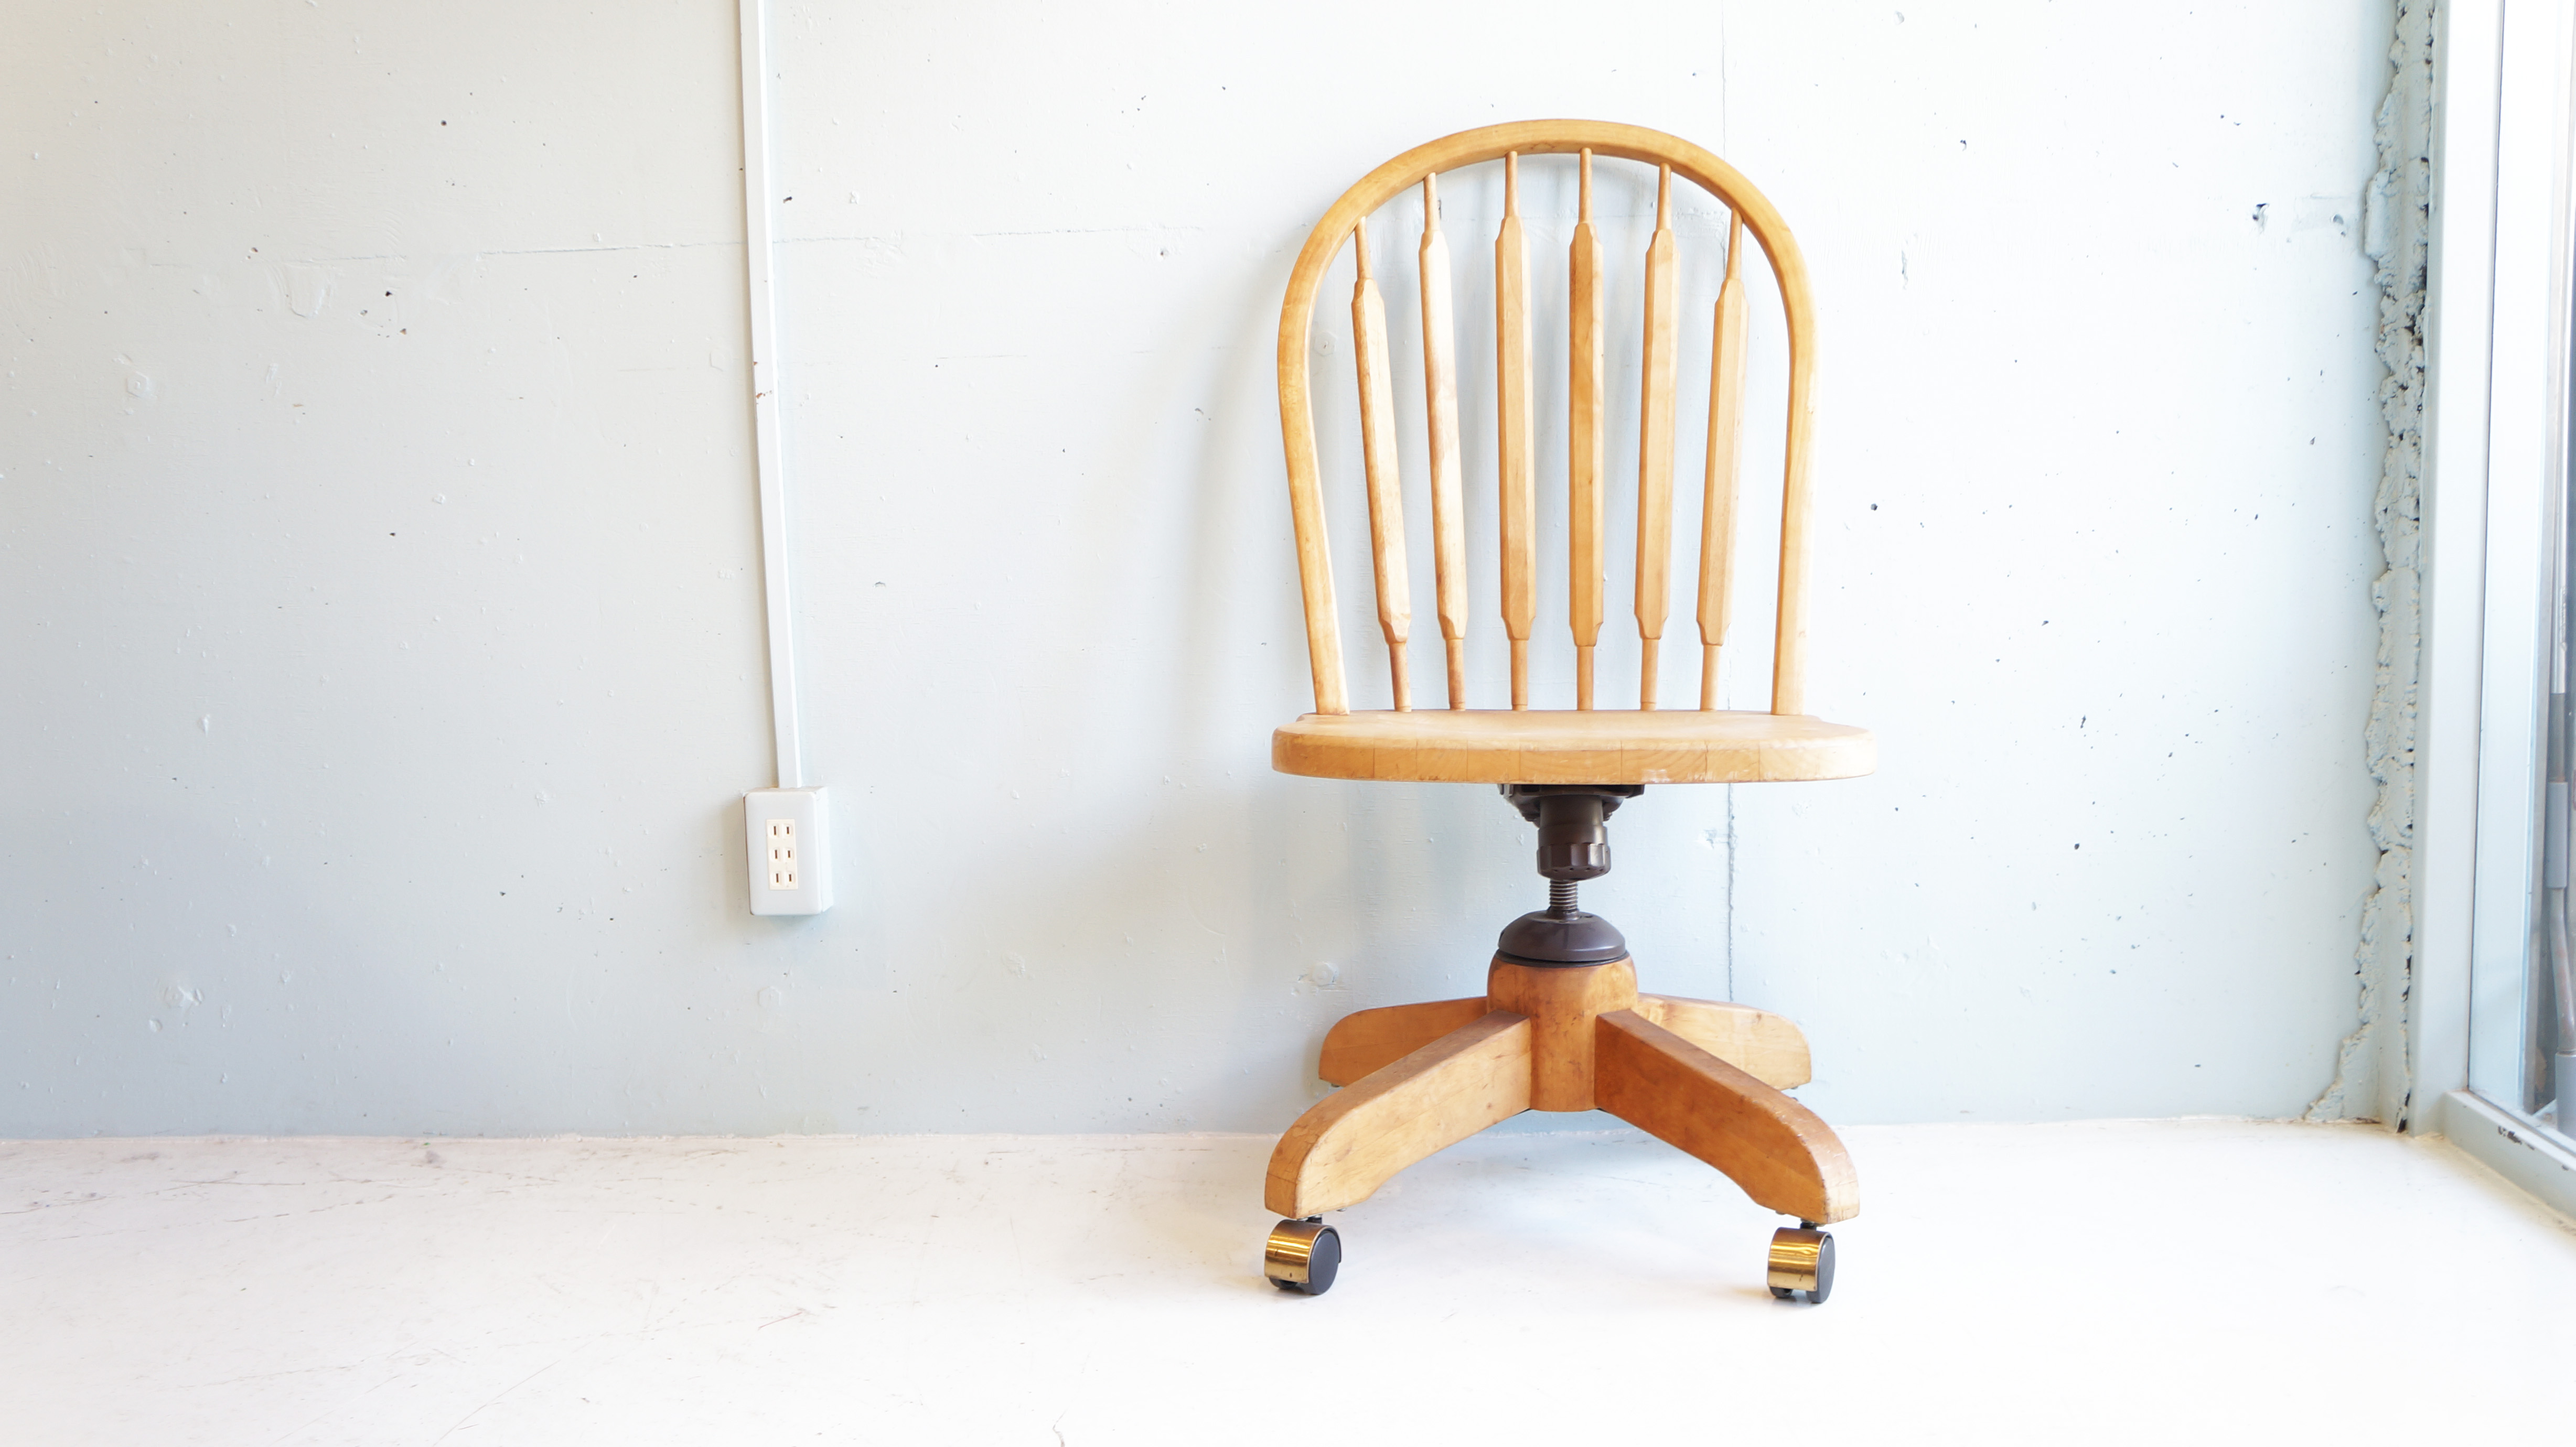 CASTER CHAIR MADE IN CANADA NATURAL STYLE / カナダ製 キャスター チェア ナチュラルインテリア 無垢材